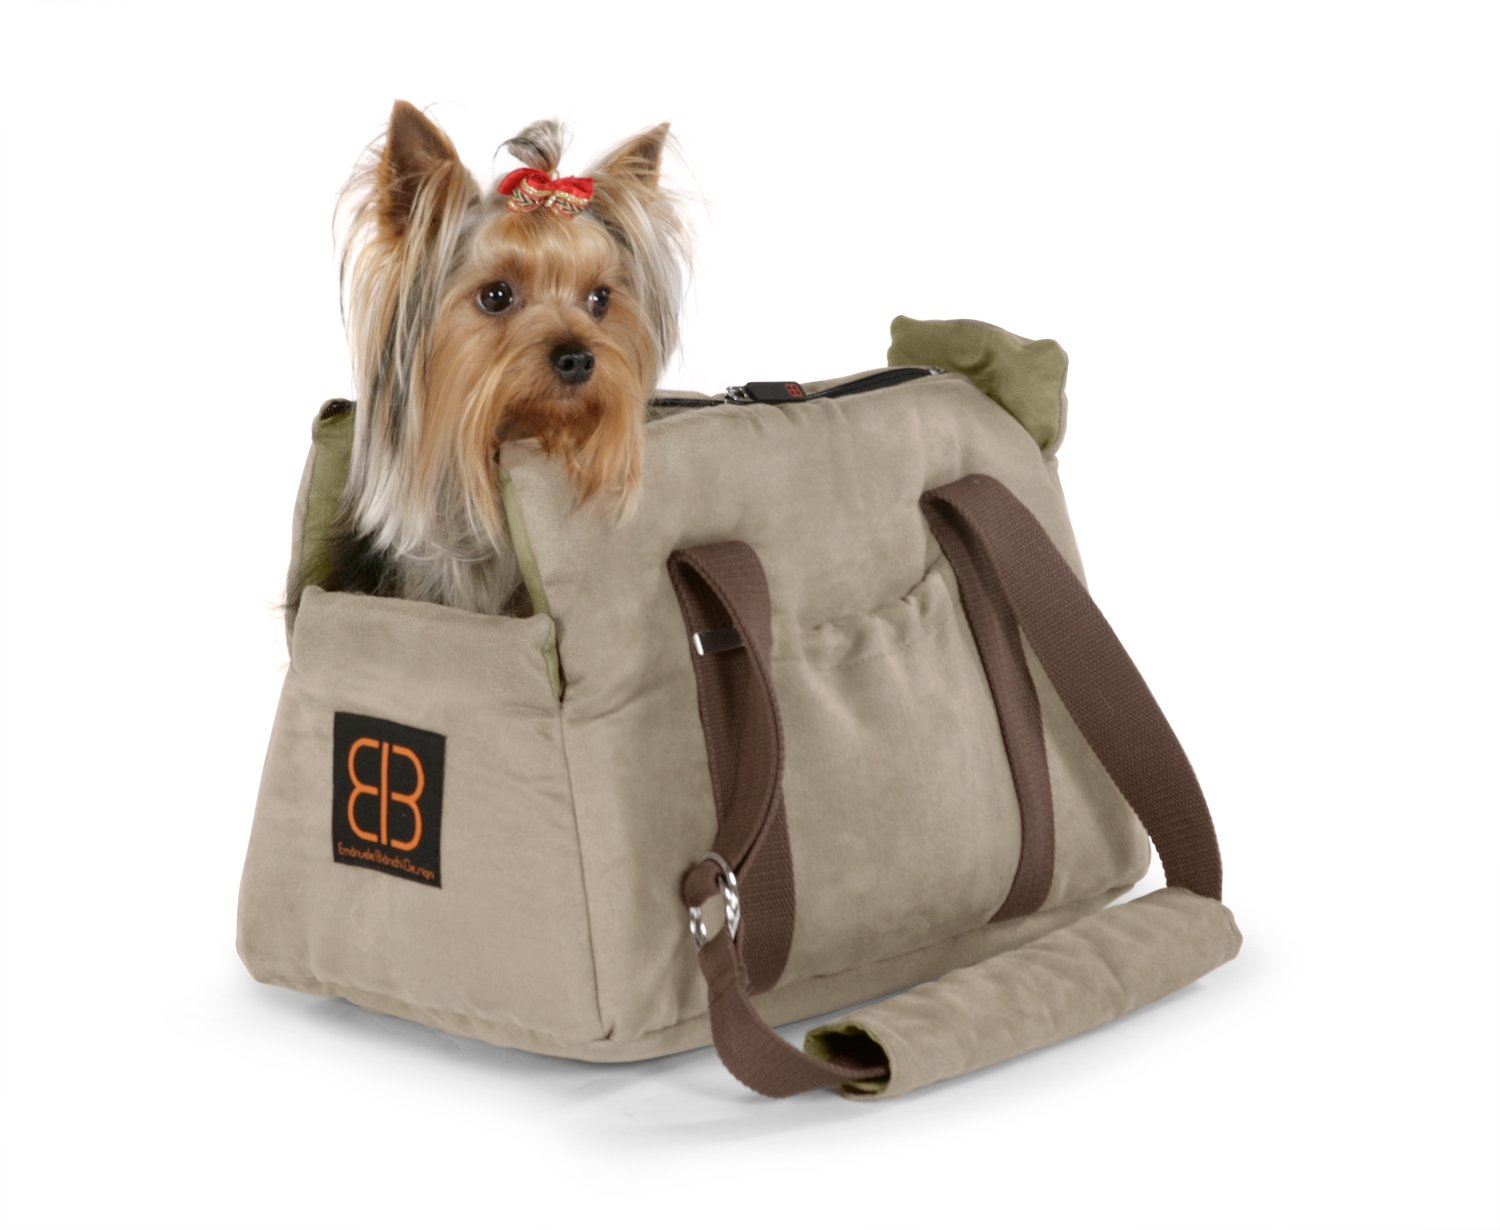 Petego Velvet Bitty Bag Pet Carrier, Stone/Sage